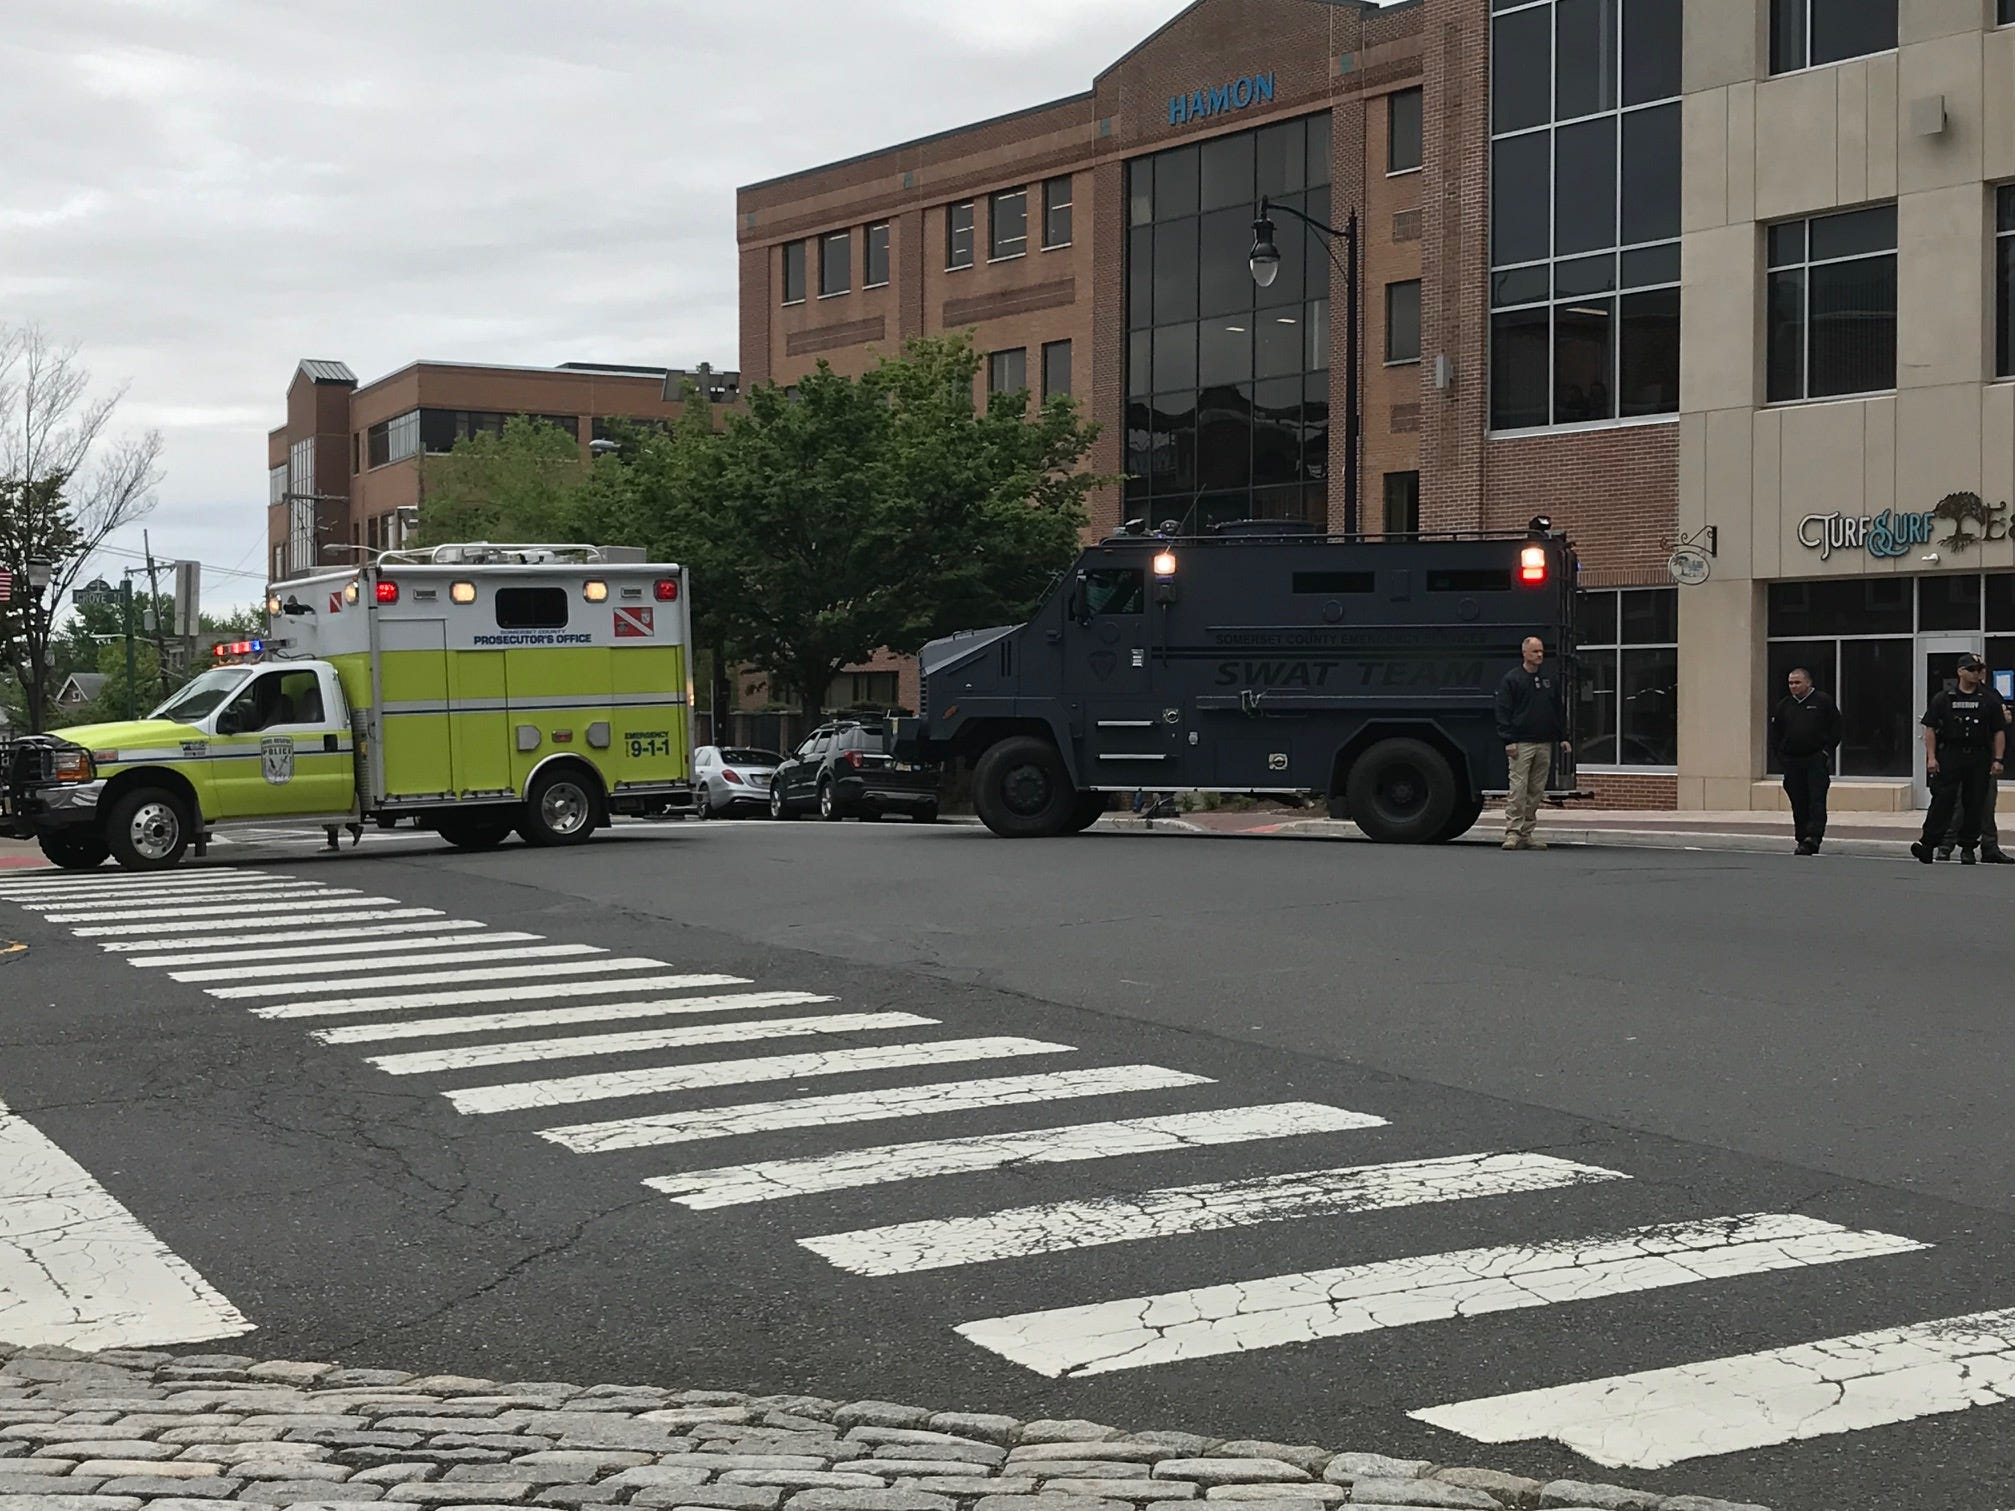 Emergency vehicles blocked off Main Street at Grove Street in Somerville for the safe passage of the riders participating in the Police Unity Tour.